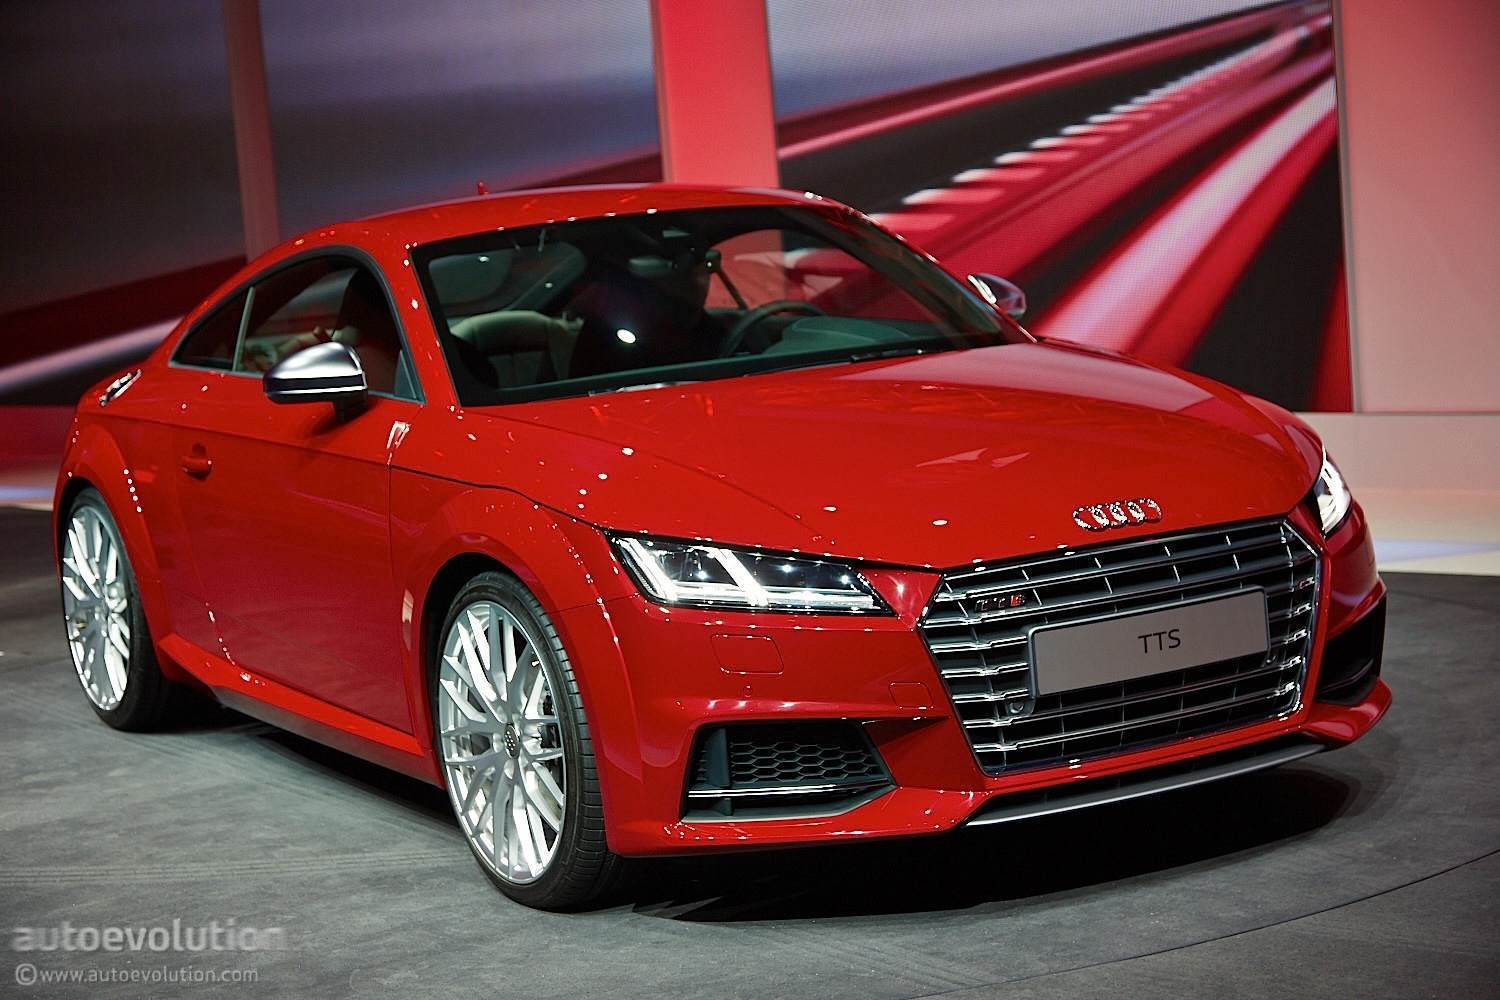 new audi tt and tts coupes get evolutionary styling and. Black Bedroom Furniture Sets. Home Design Ideas